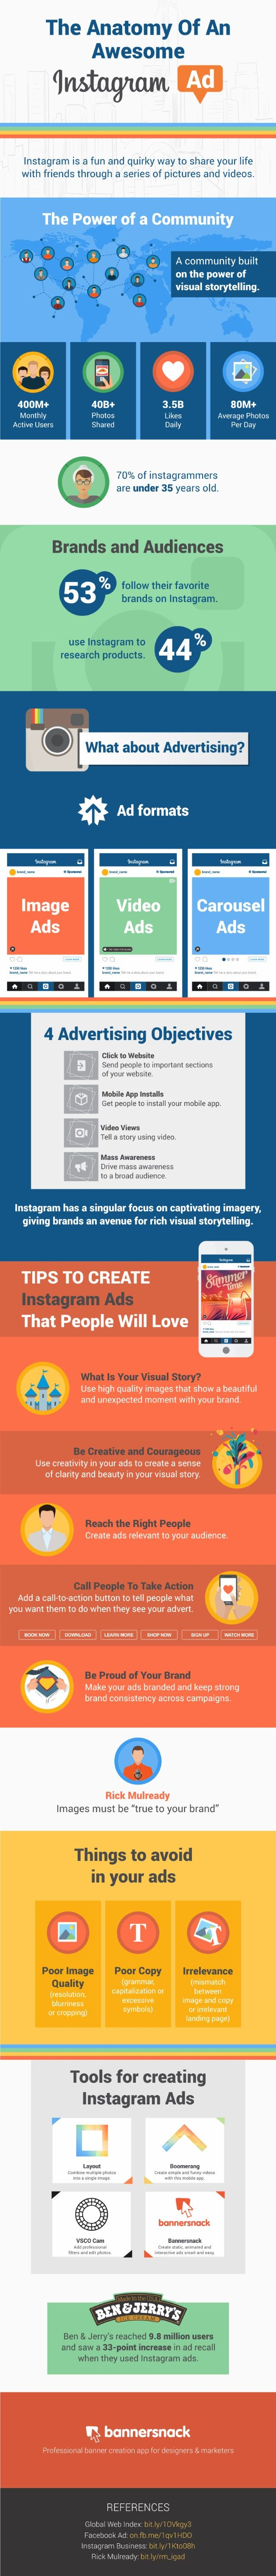 Instagram Advertising for Beginners: How to Create Awesome Ads